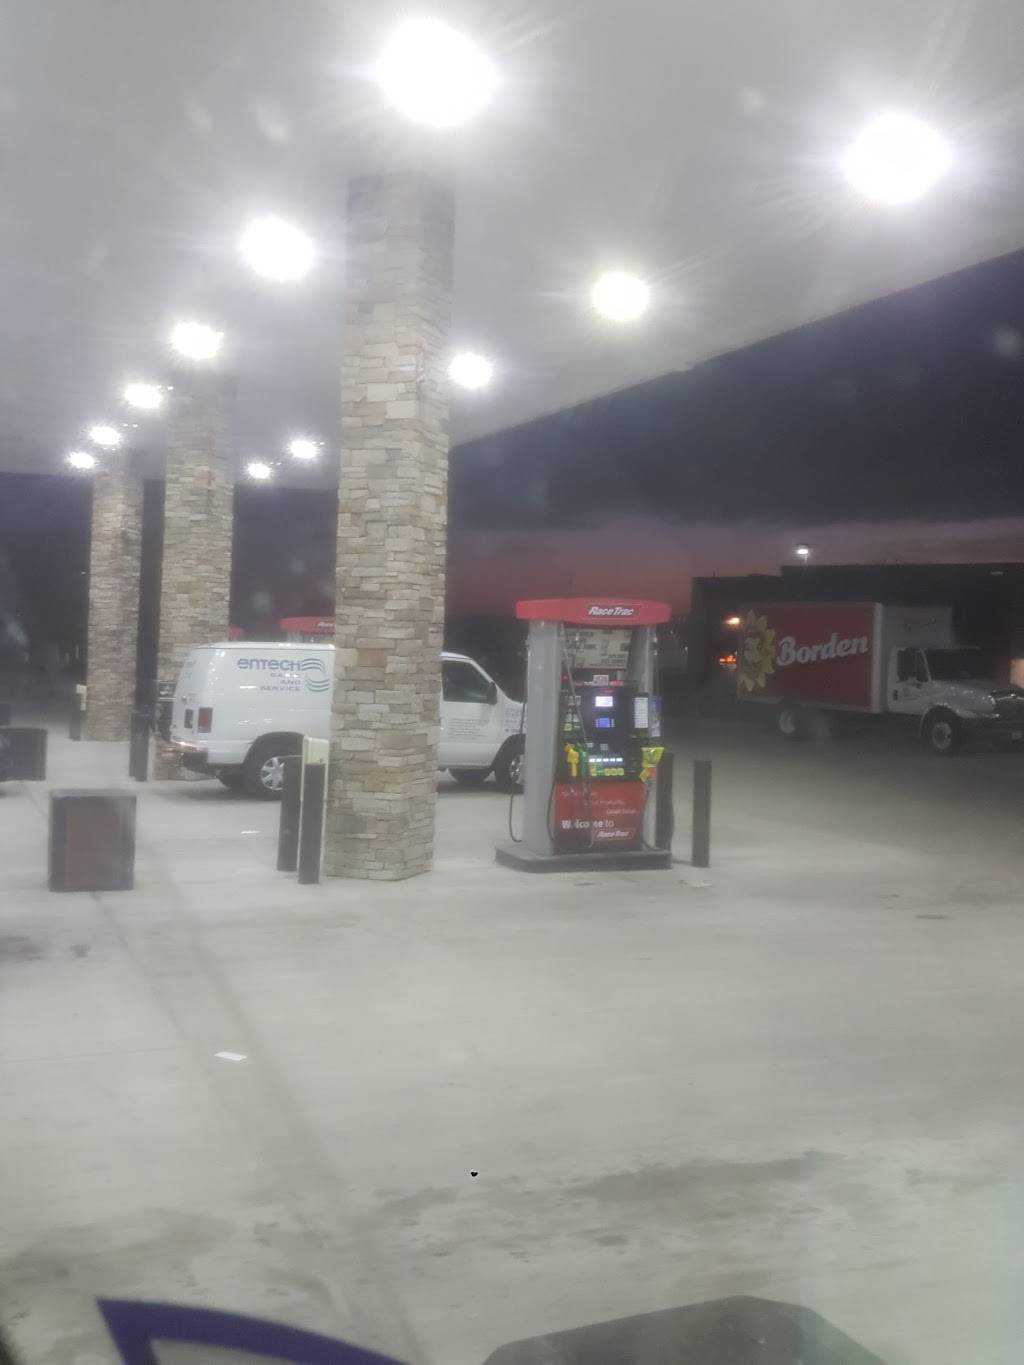 RaceTrac - gas station  | Photo 7 of 10 | Address: 840 W Exchange Pkwy, Allen, TX 75013, USA | Phone: (214) 383-9793